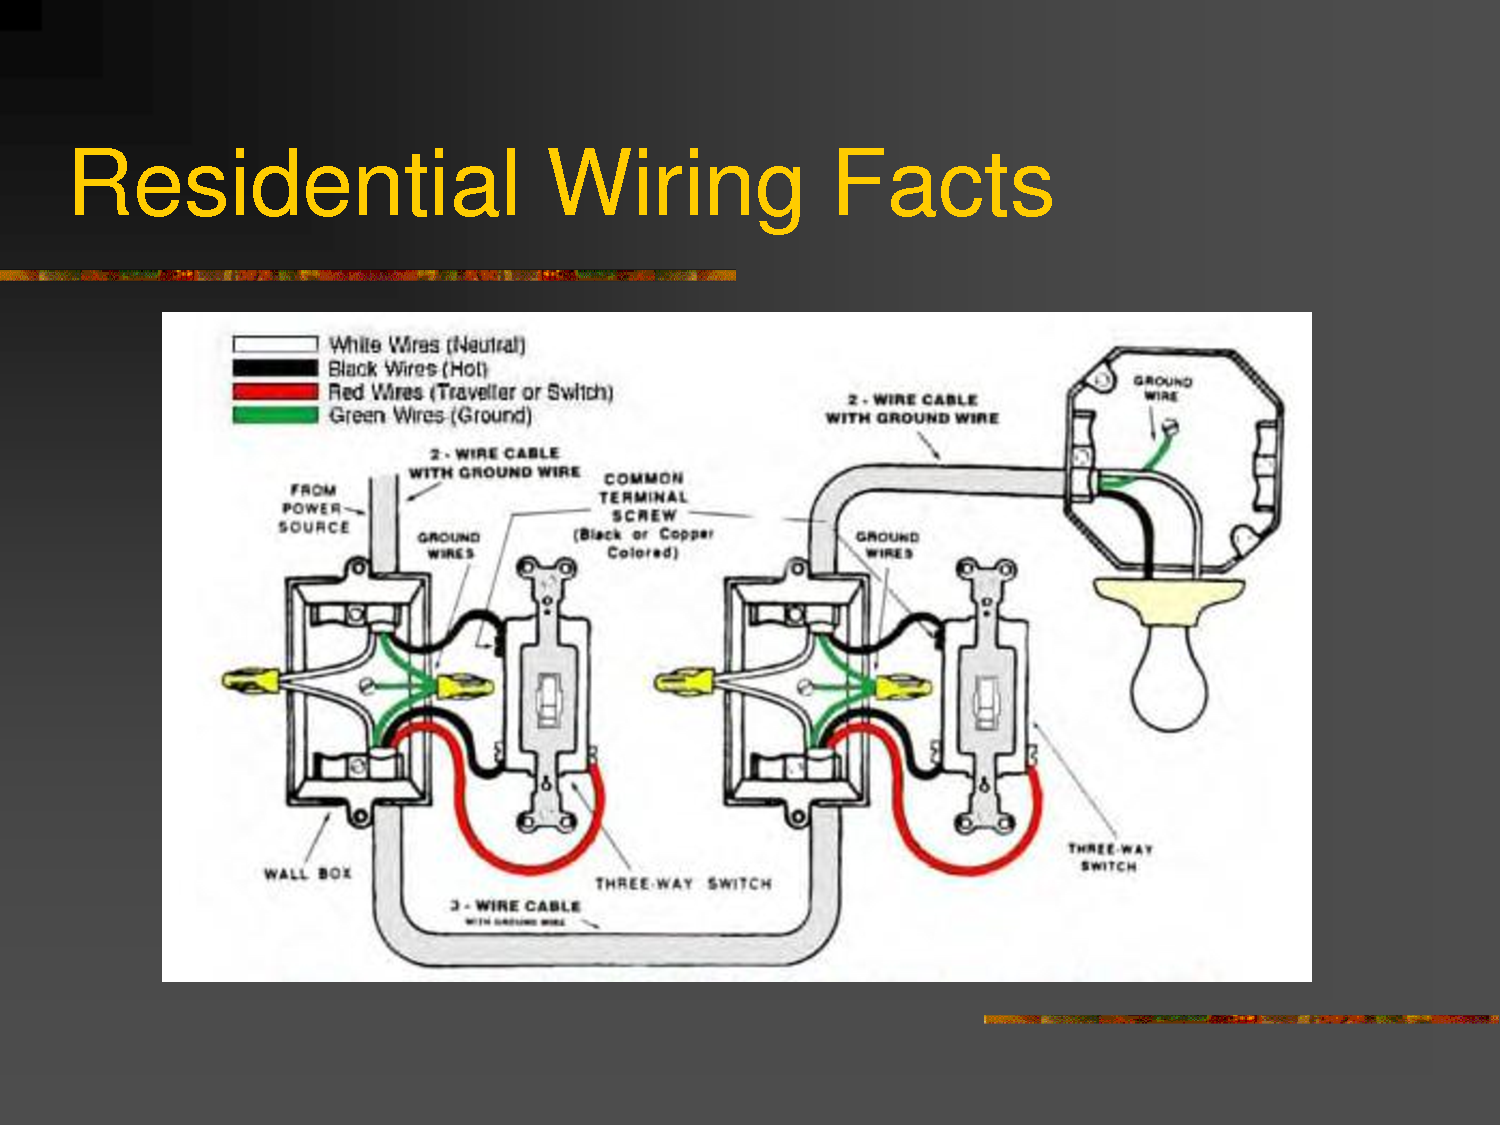 85f6d7068dddf27aa5737fc68962f04e 4 best images of residential wiring diagrams house electrical residential electrical wiring diagram example at gsmx.co